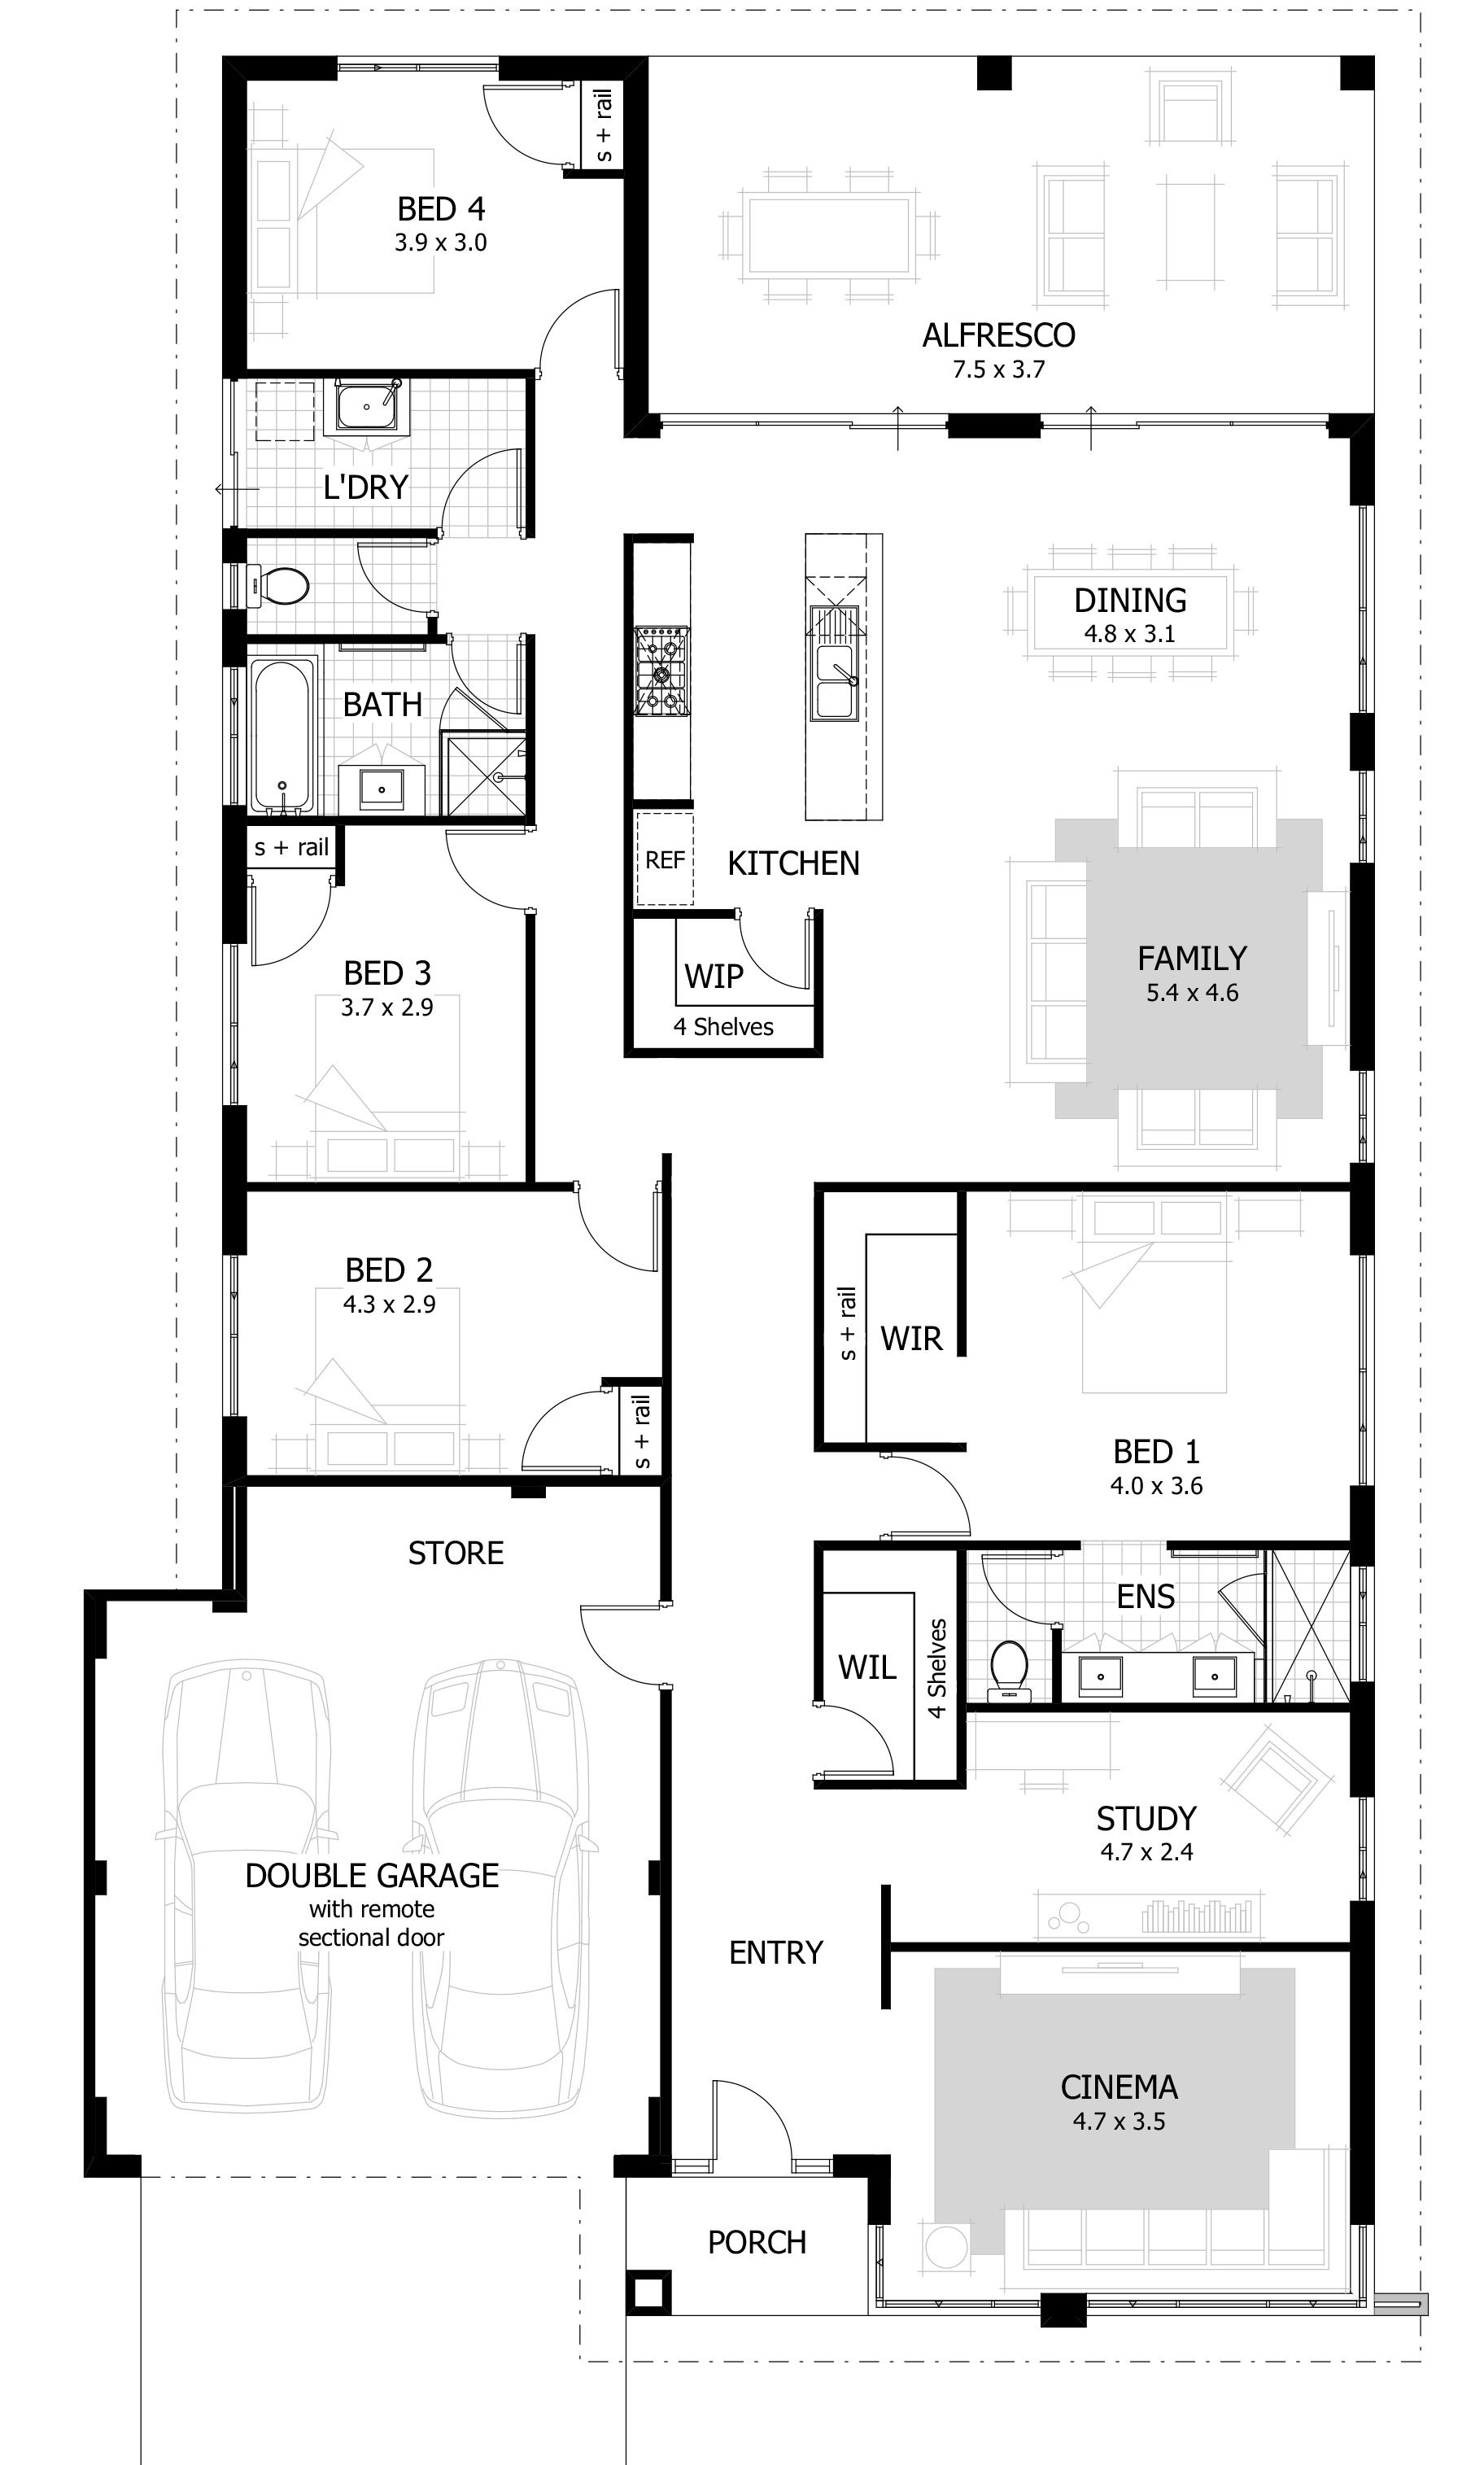 Small 4 Bedroom House Plans New 4 Bedroom House Plans & Home Designs